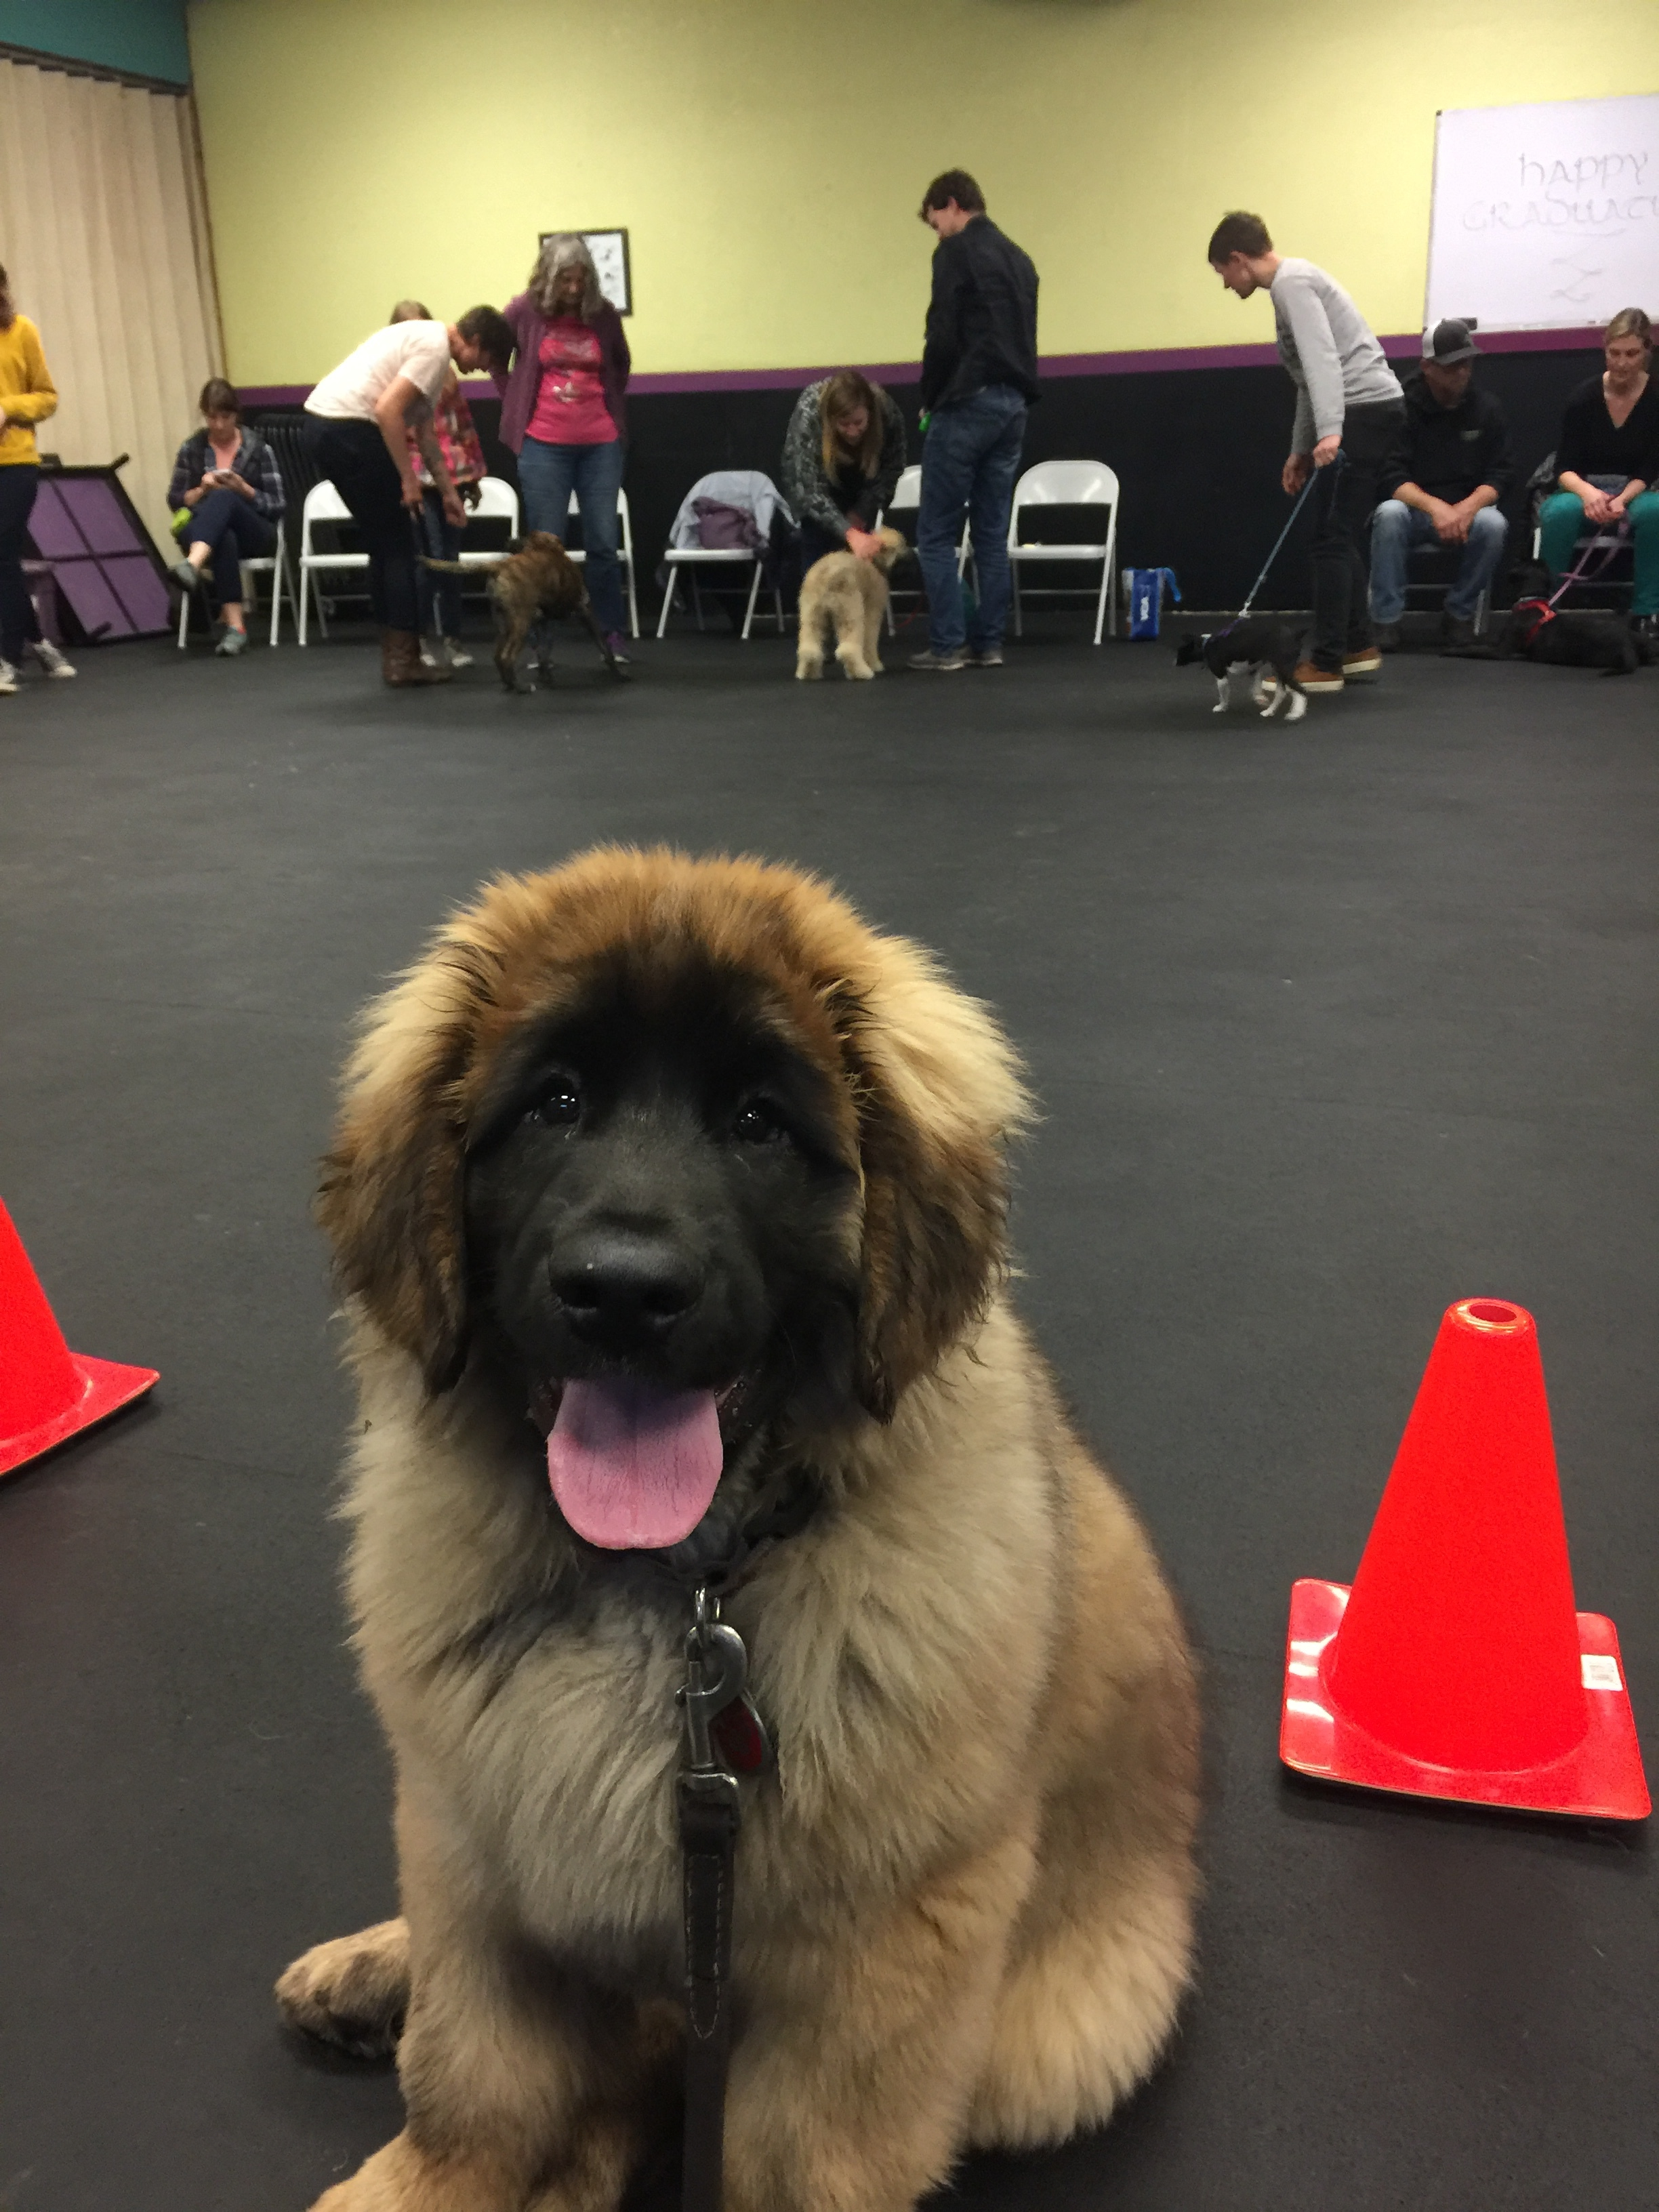 Rollo the Leonberger - Rollo is attentive and studious, just like me!